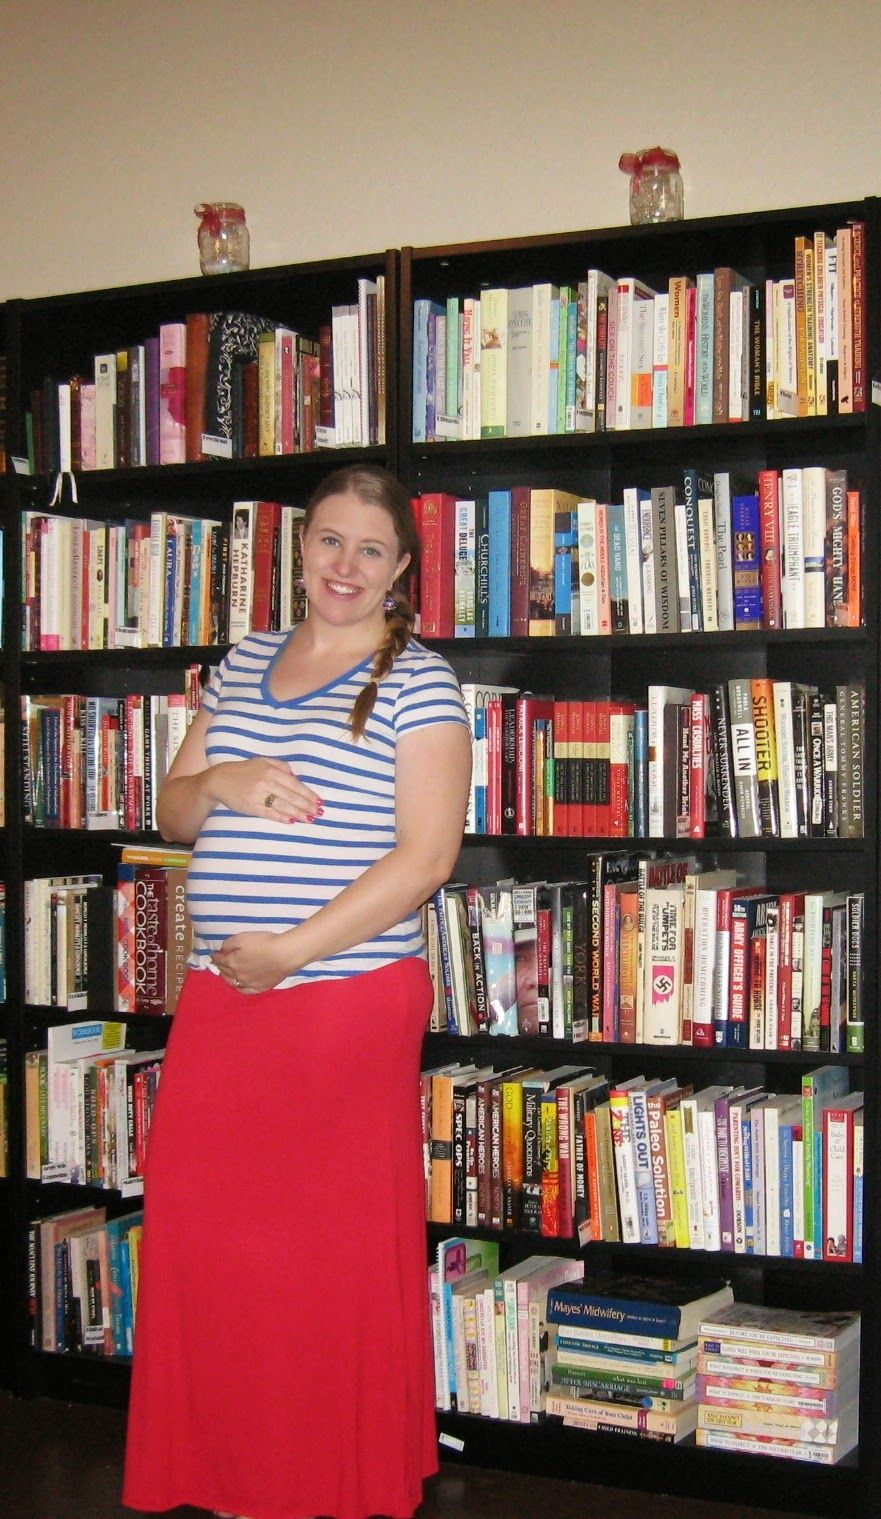 Modest Maternity, Maternity Clothes,Fashion during pregnancy, pregnancy style, Cute Maternity Outfits, 4th of July, July Fourth,